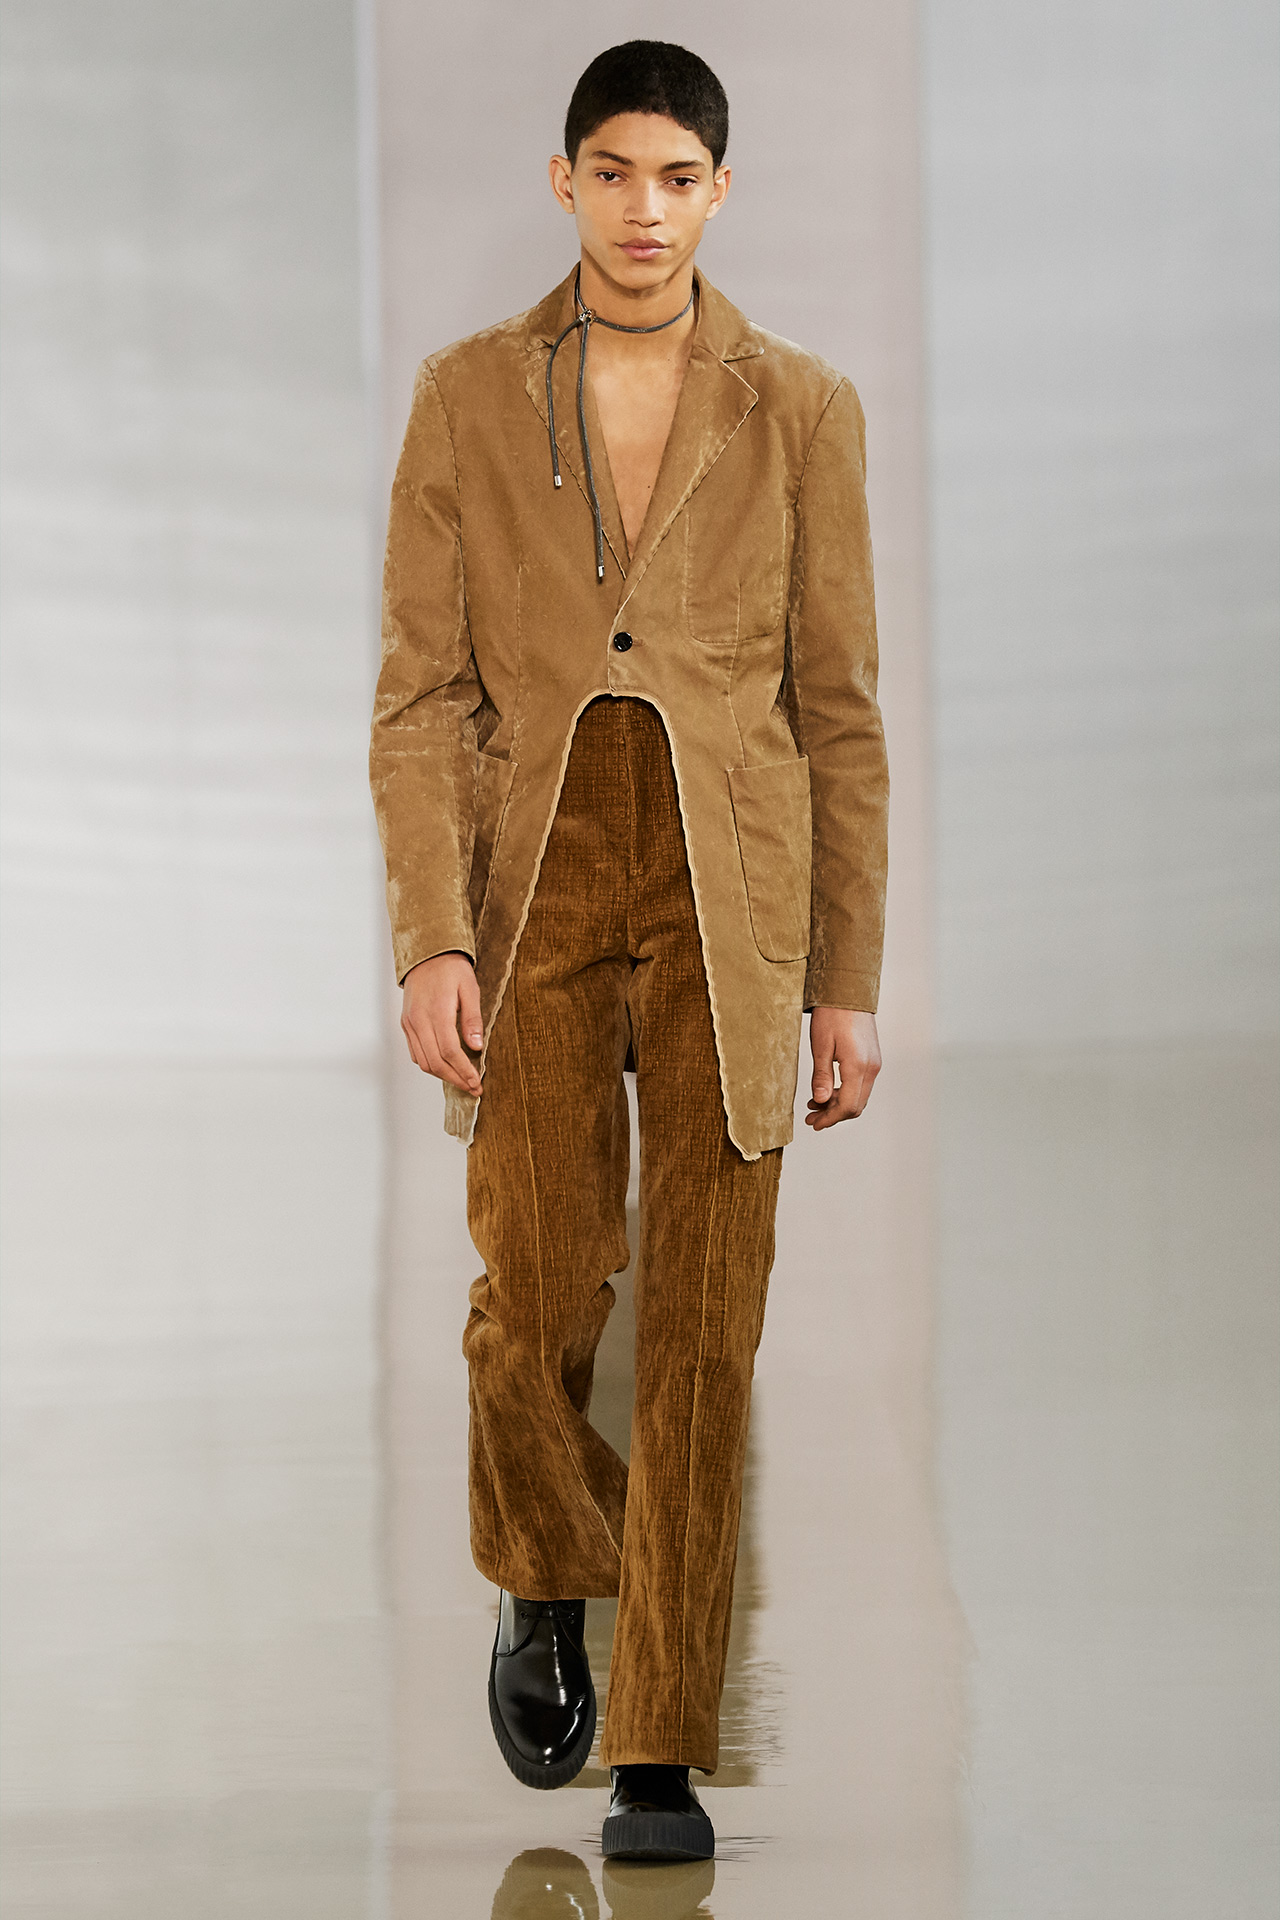 Look Fall/Winter 2020, image 23